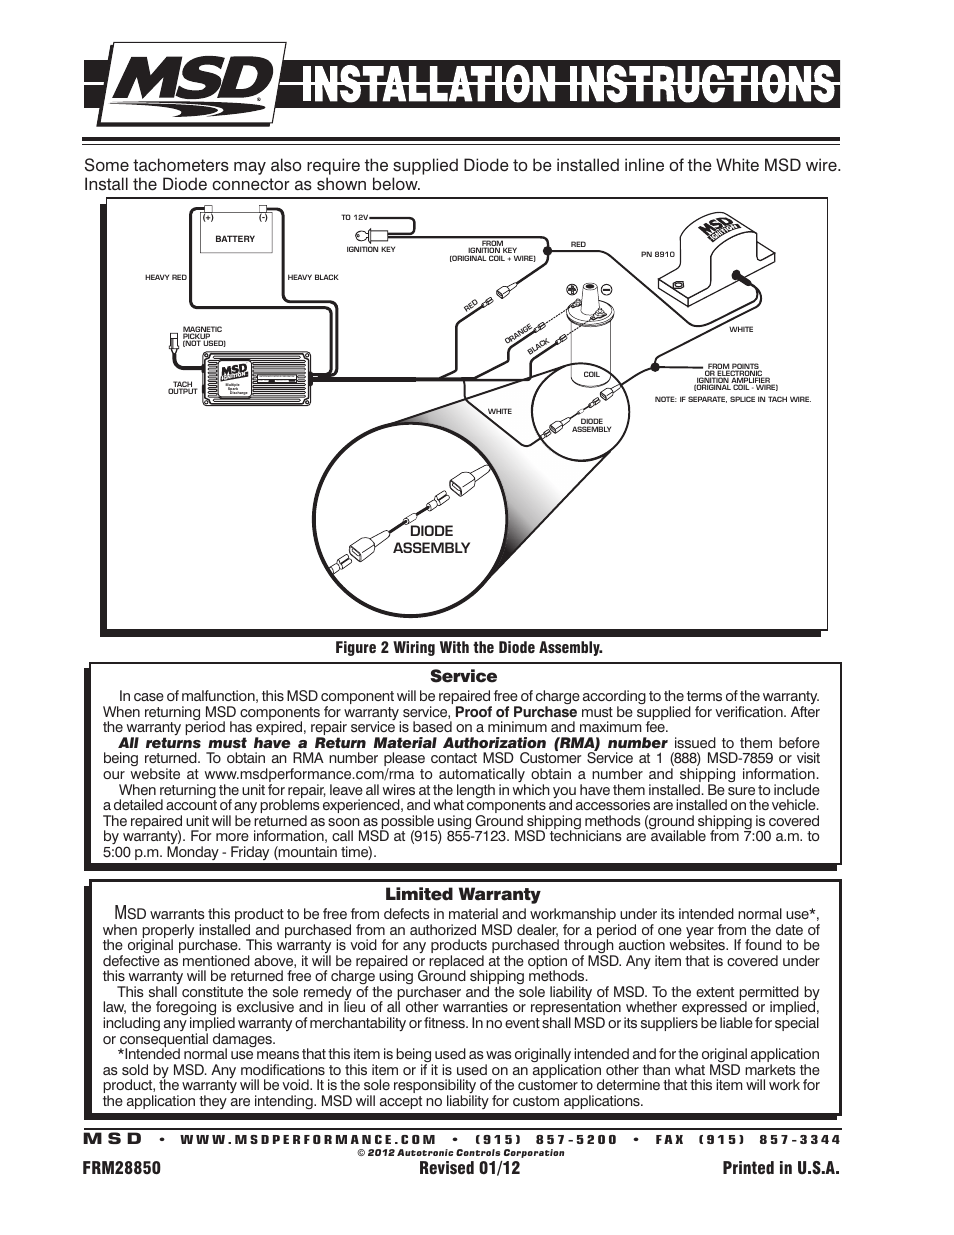 hight resolution of limited warranty service figure 2 wiring with the diode assembly msd 8910 tach adapter installation user manual page 2 2